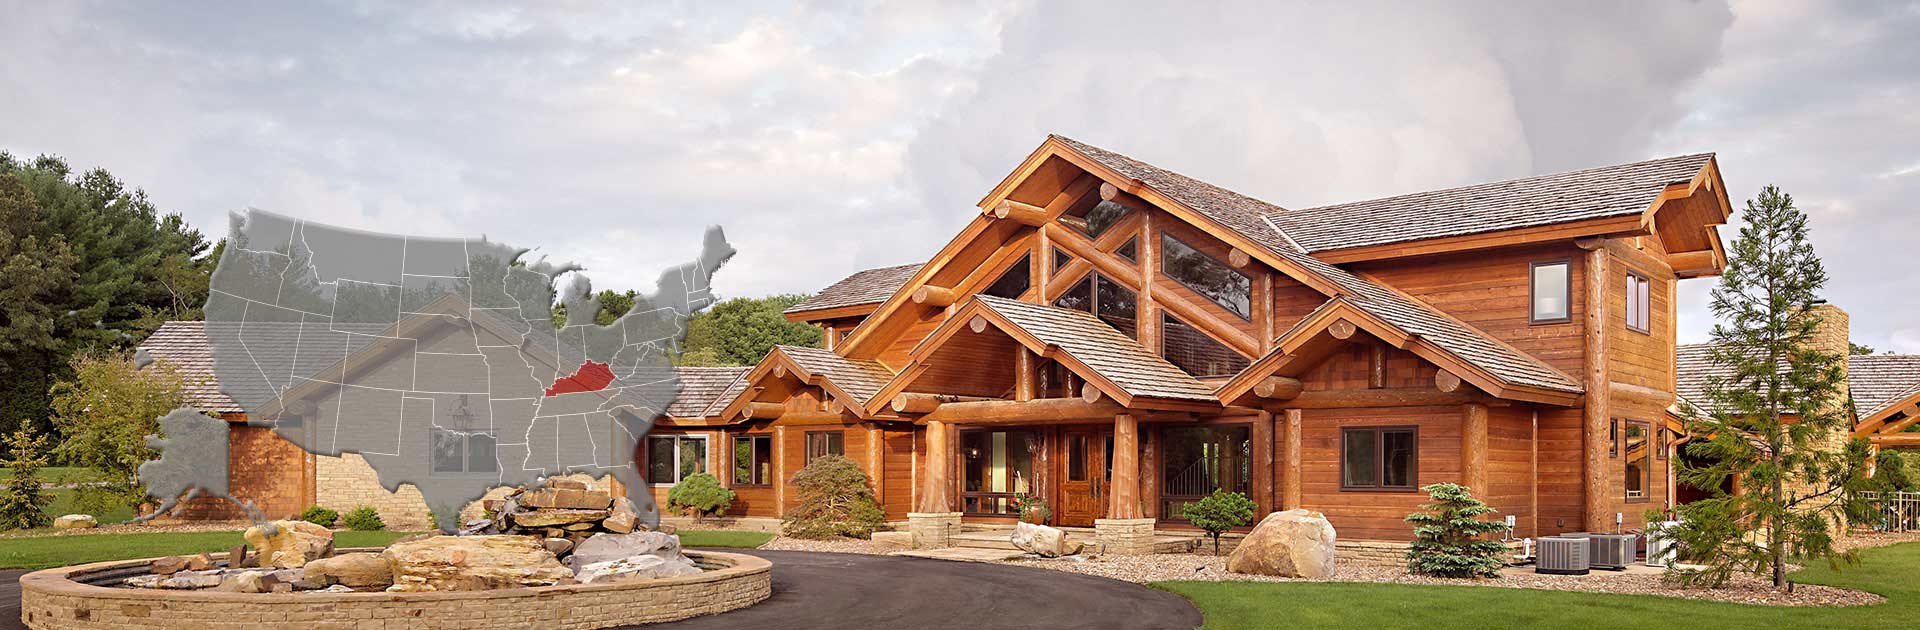 Kentucky handcrafted log home